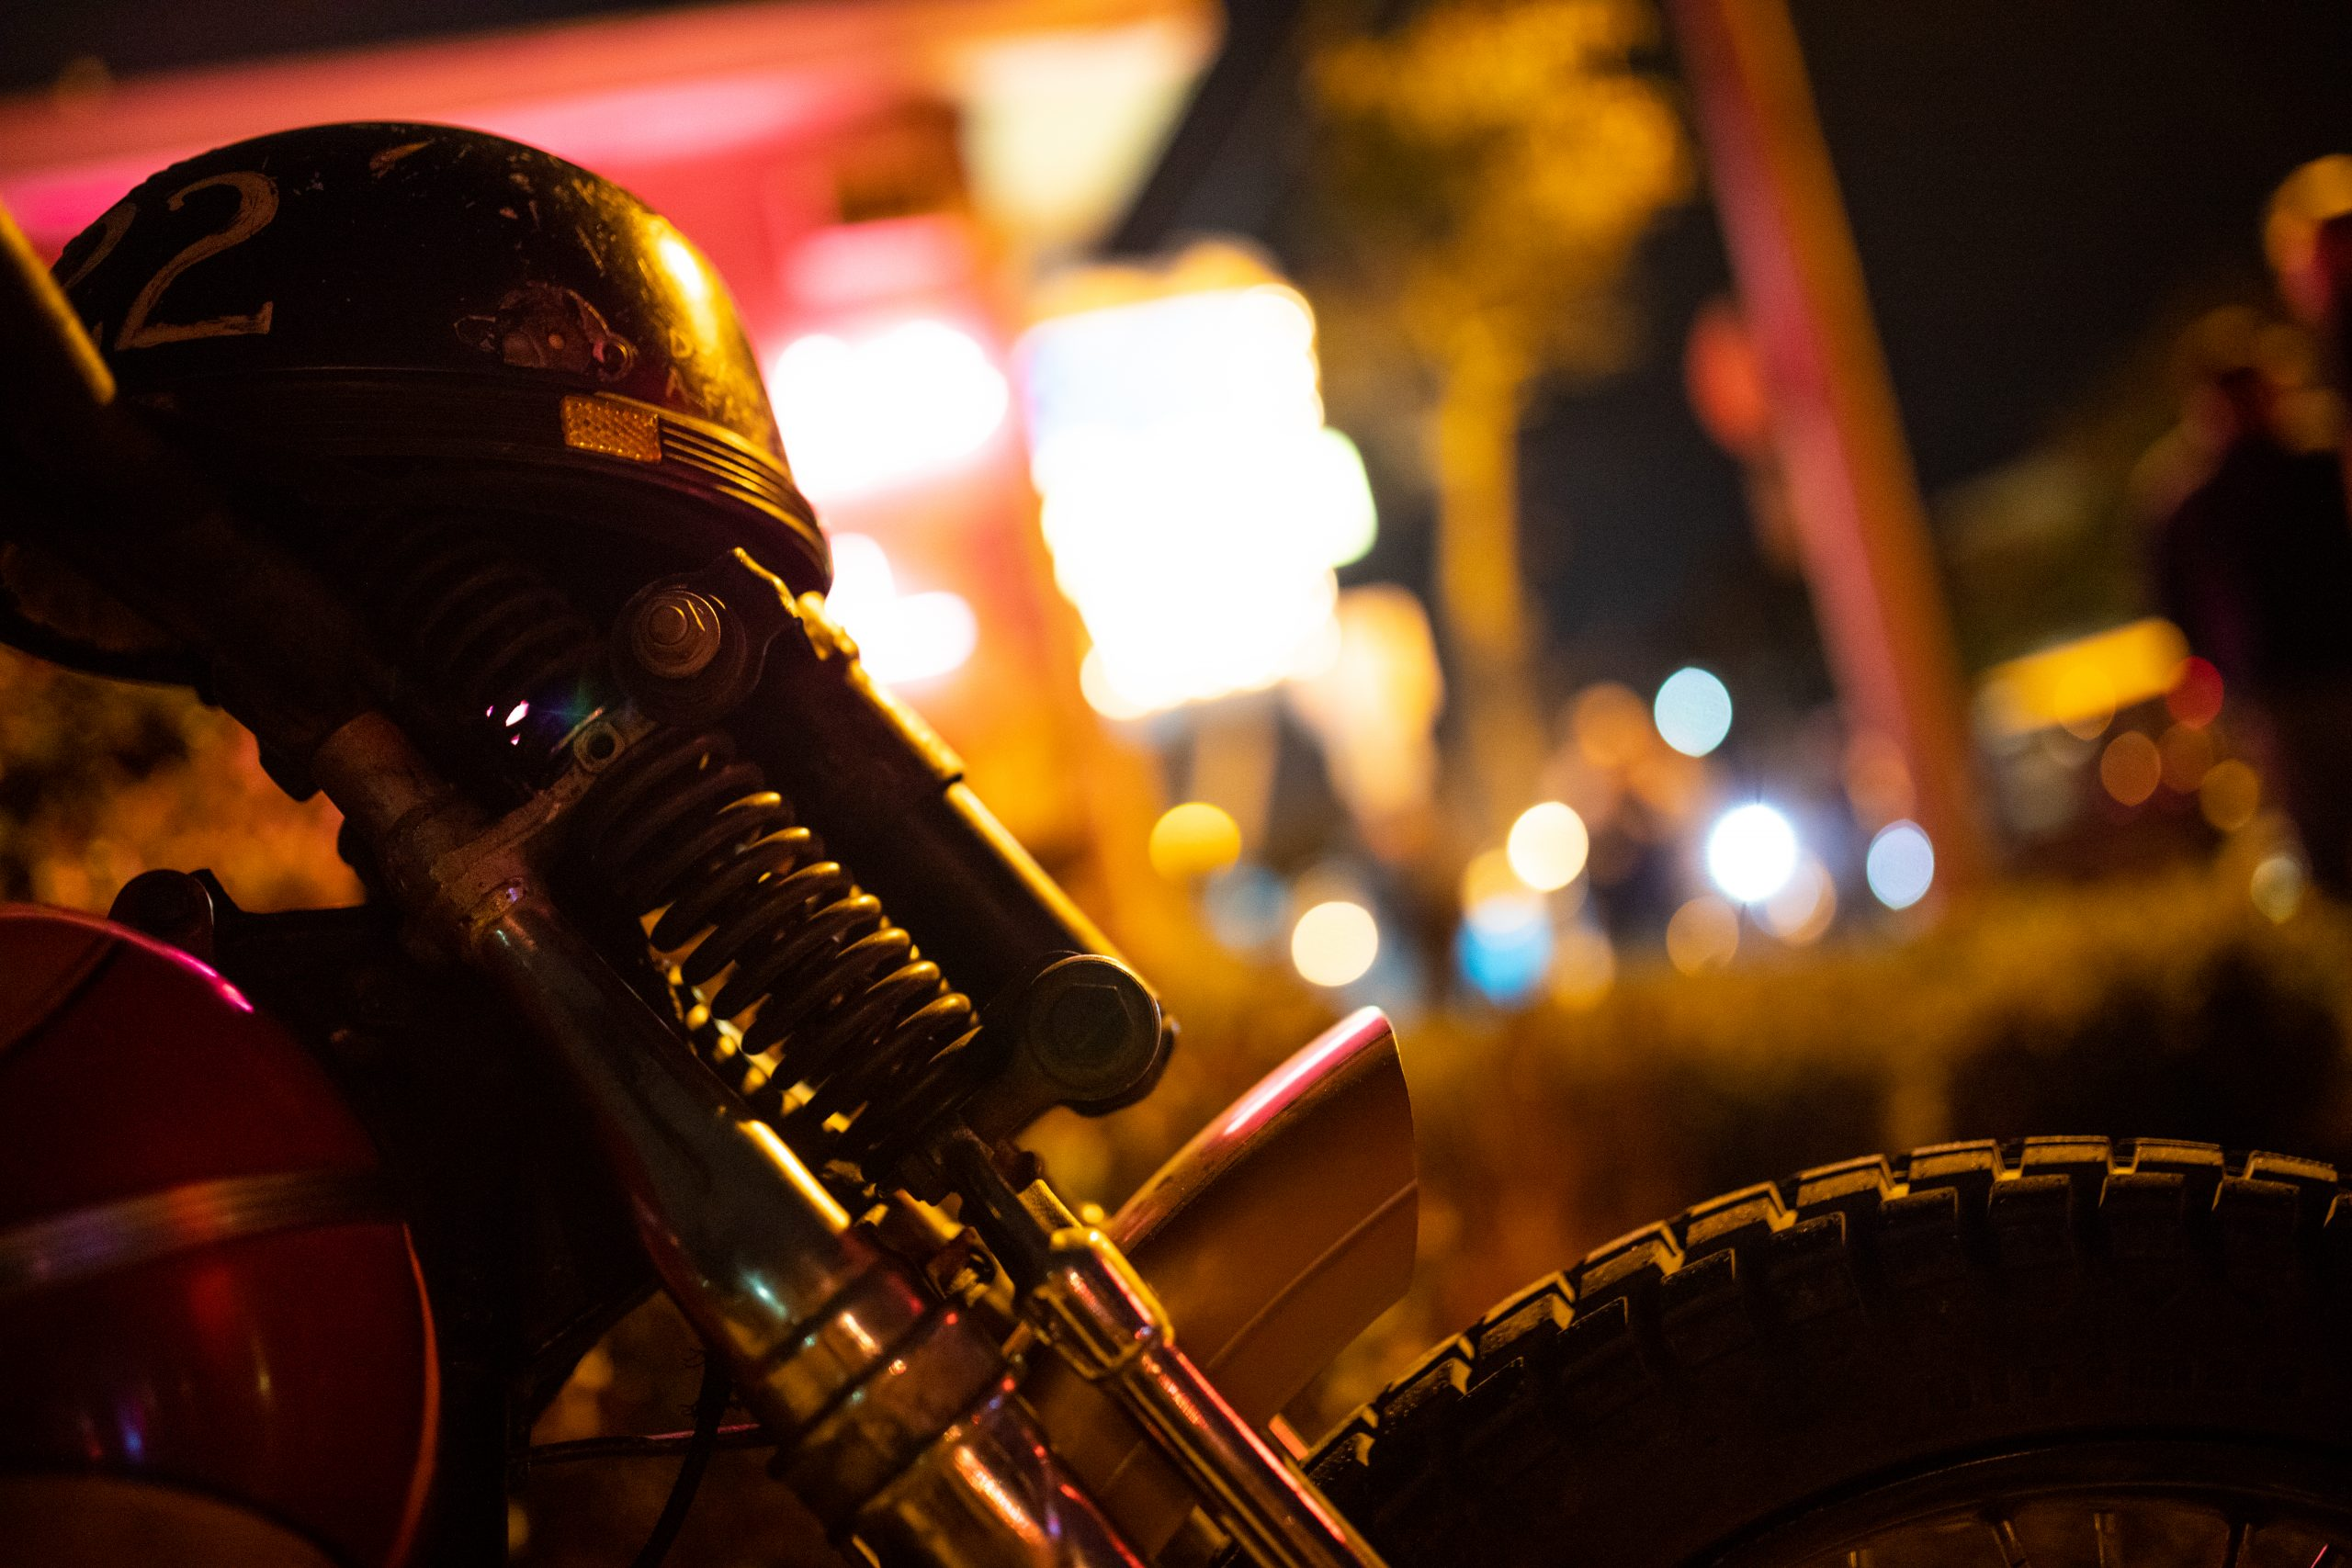 motorbike at night front fork